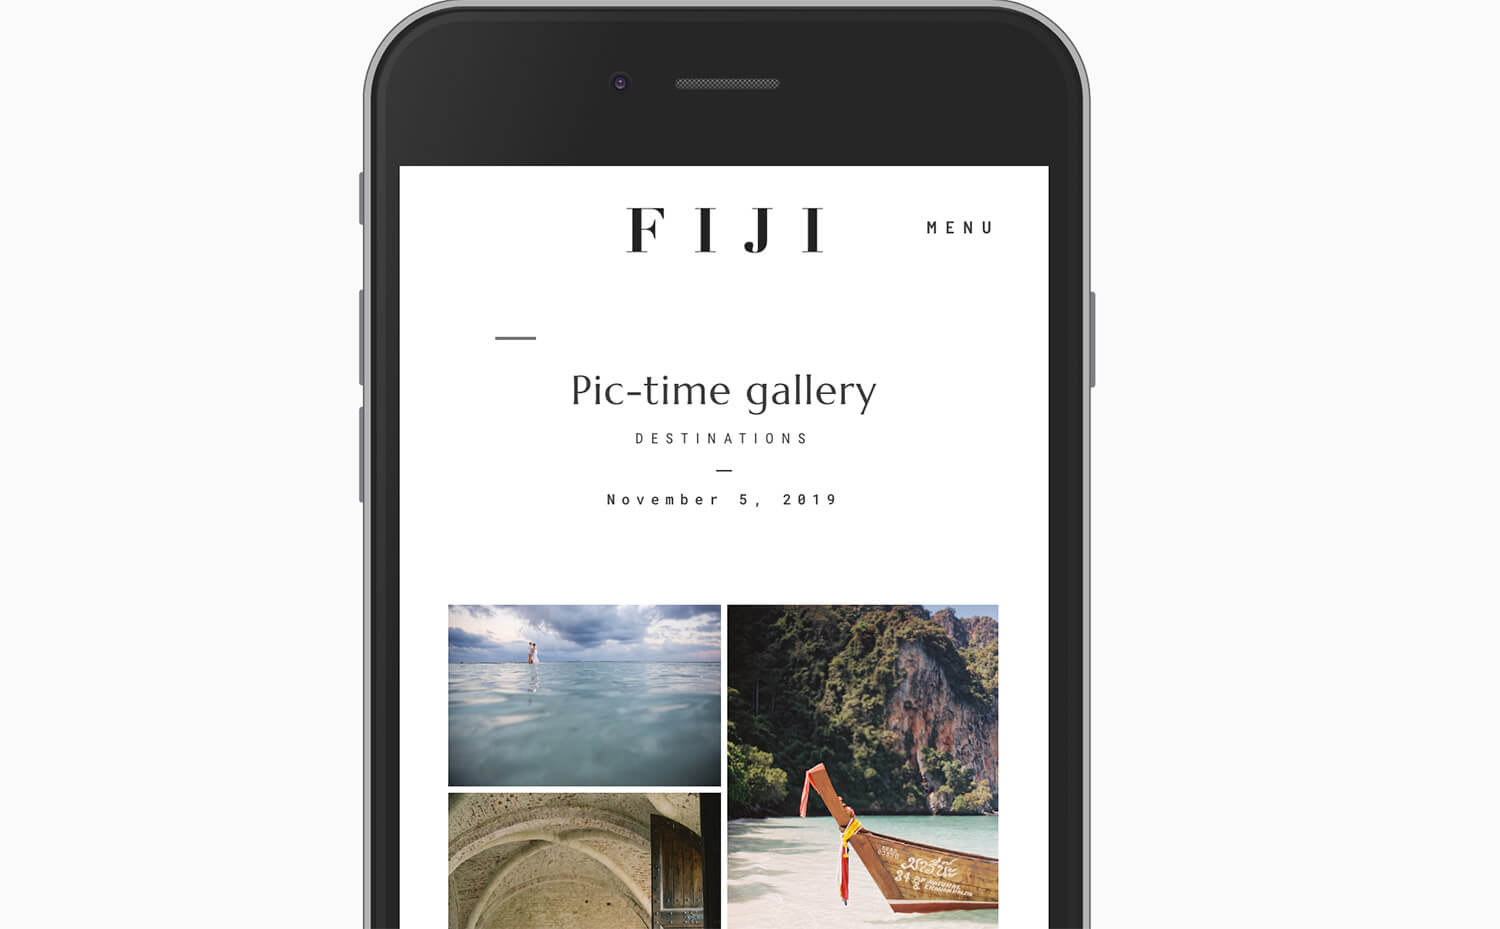 responsive-images-pic-time